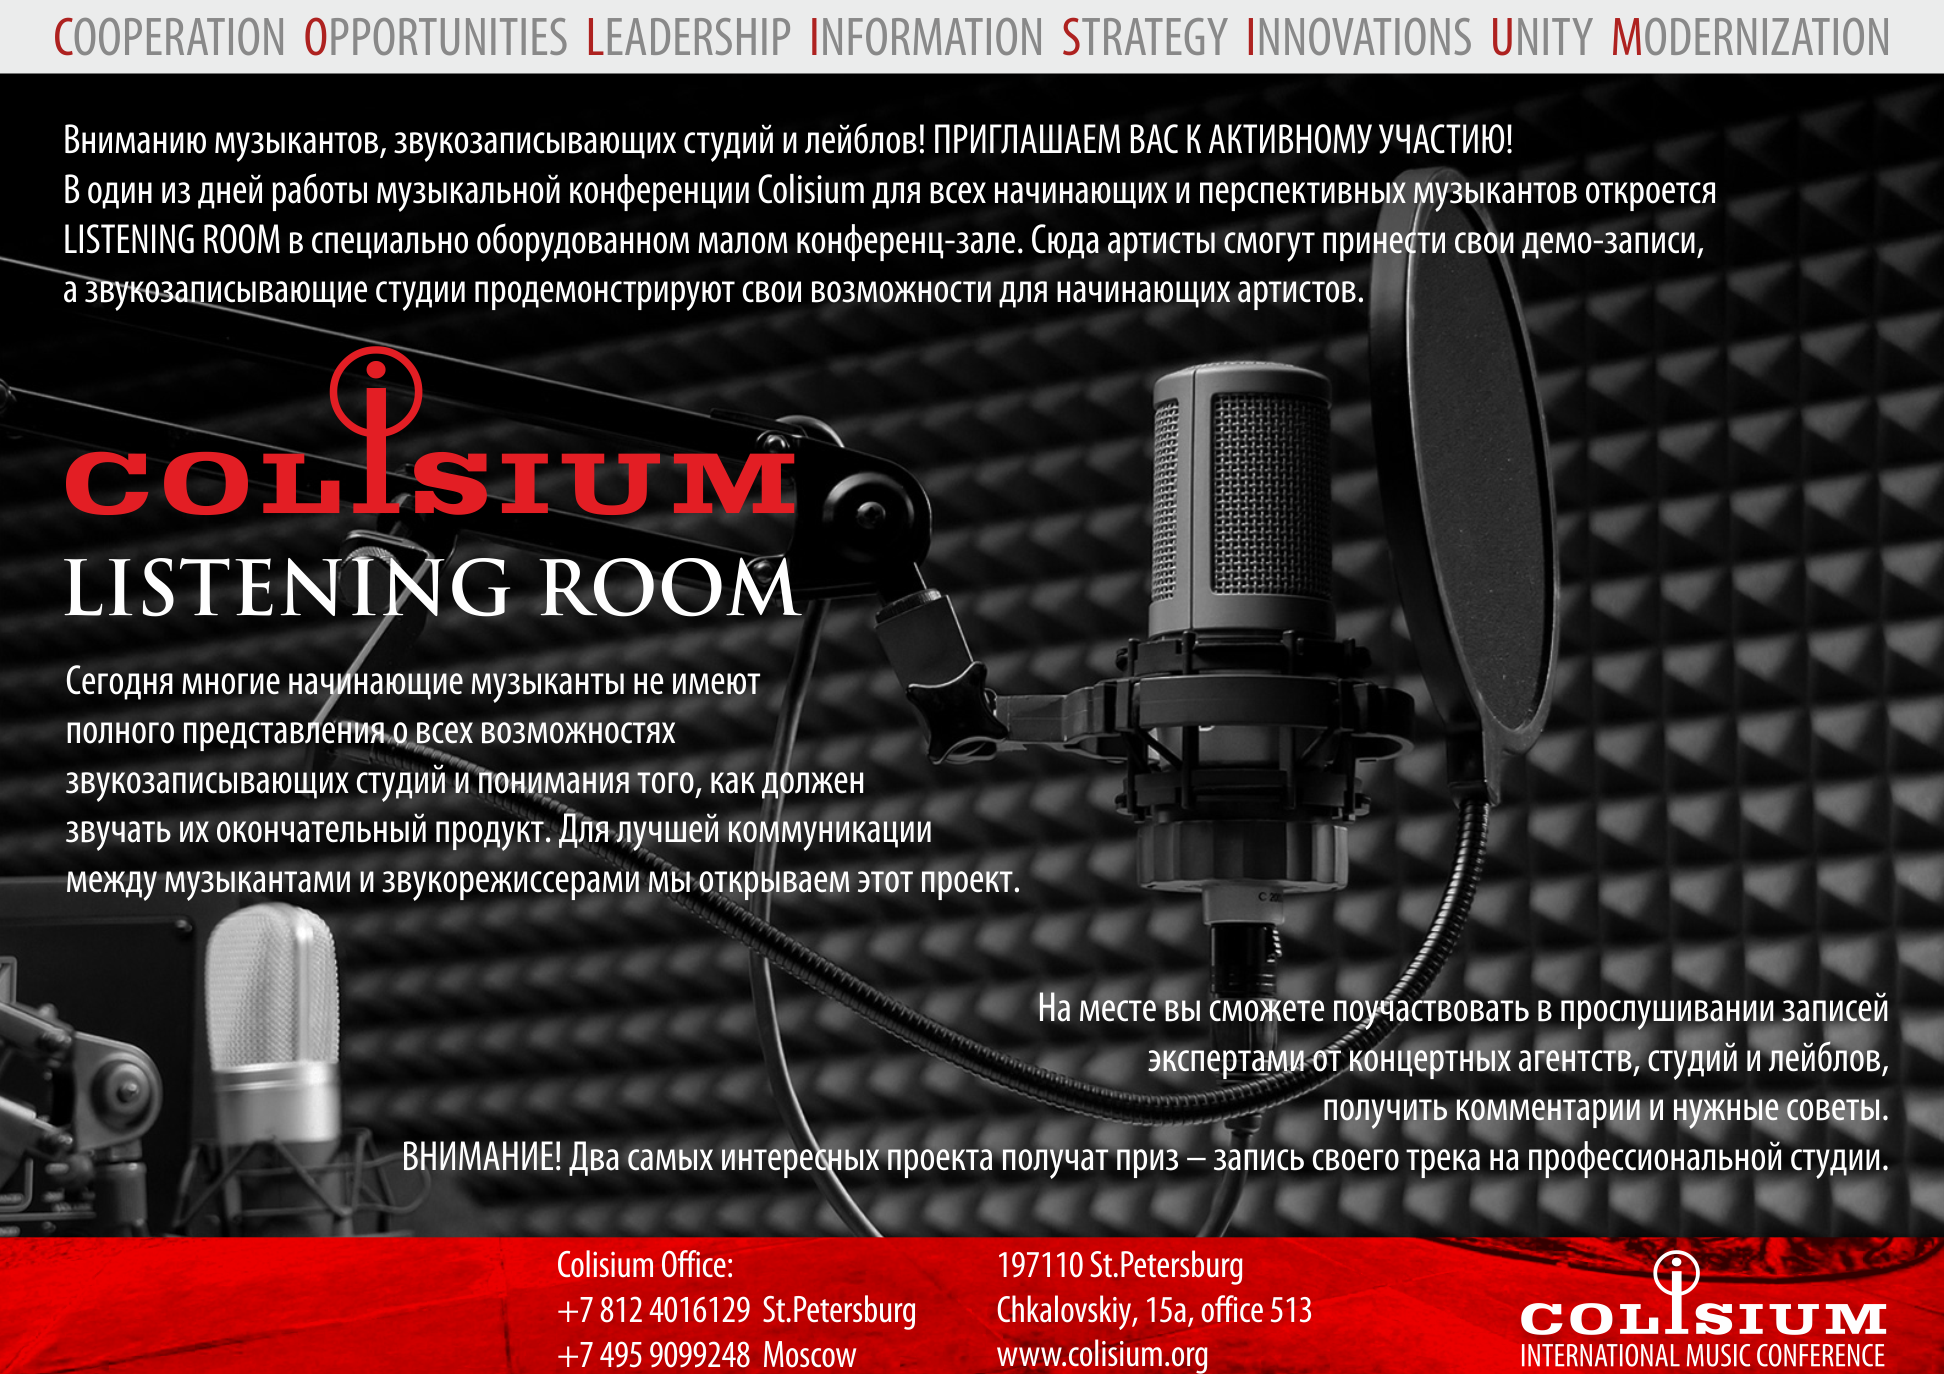 Colisium 2015 Moscow - Listening Room